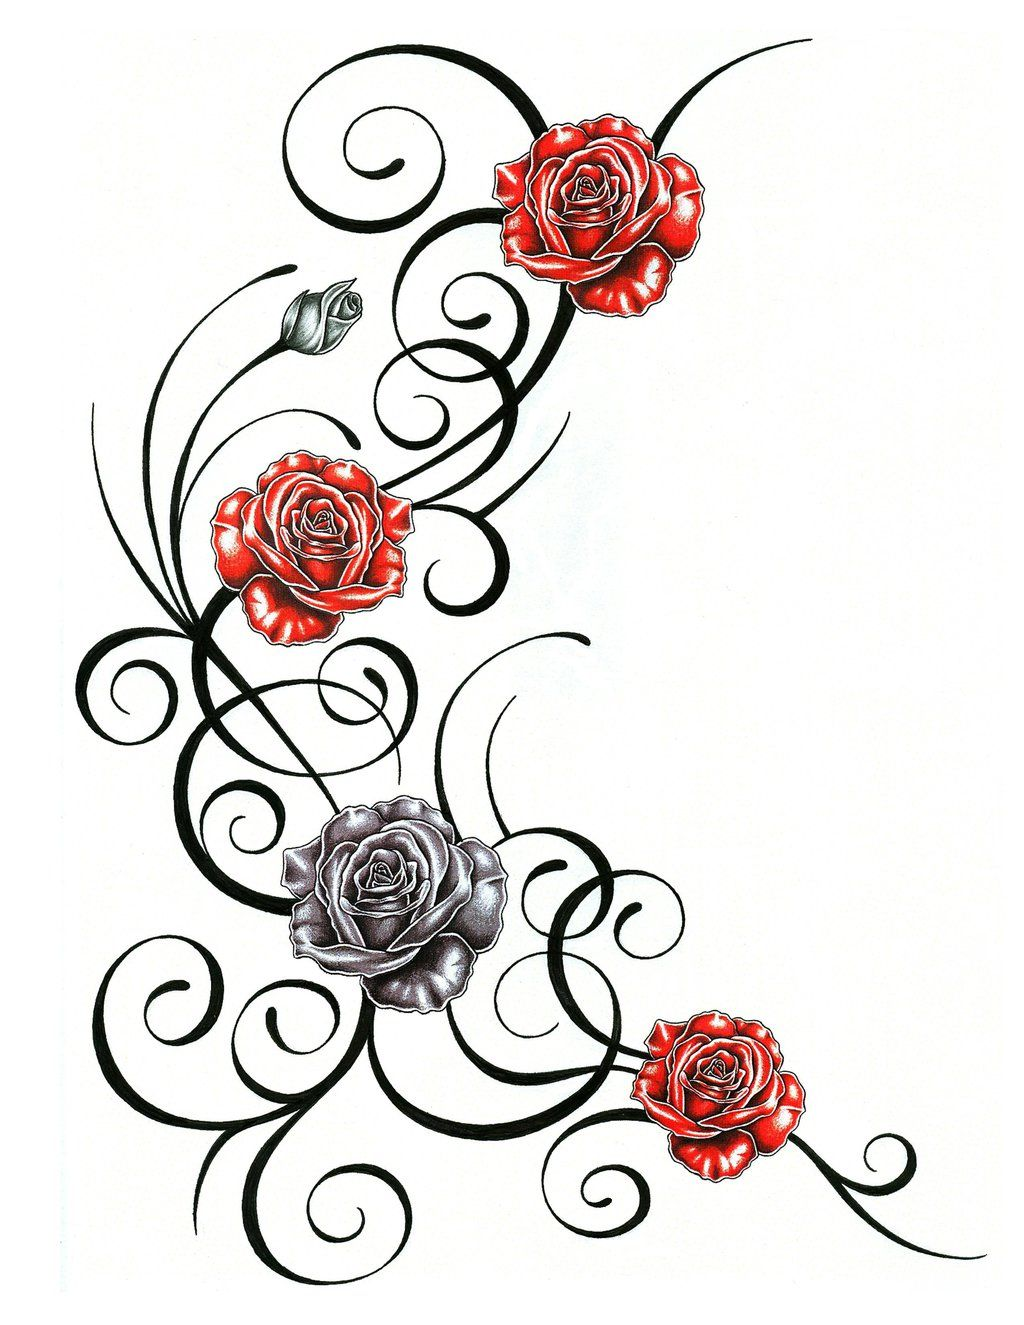 roses with tribal tattoo design by jsharts.deviantart on